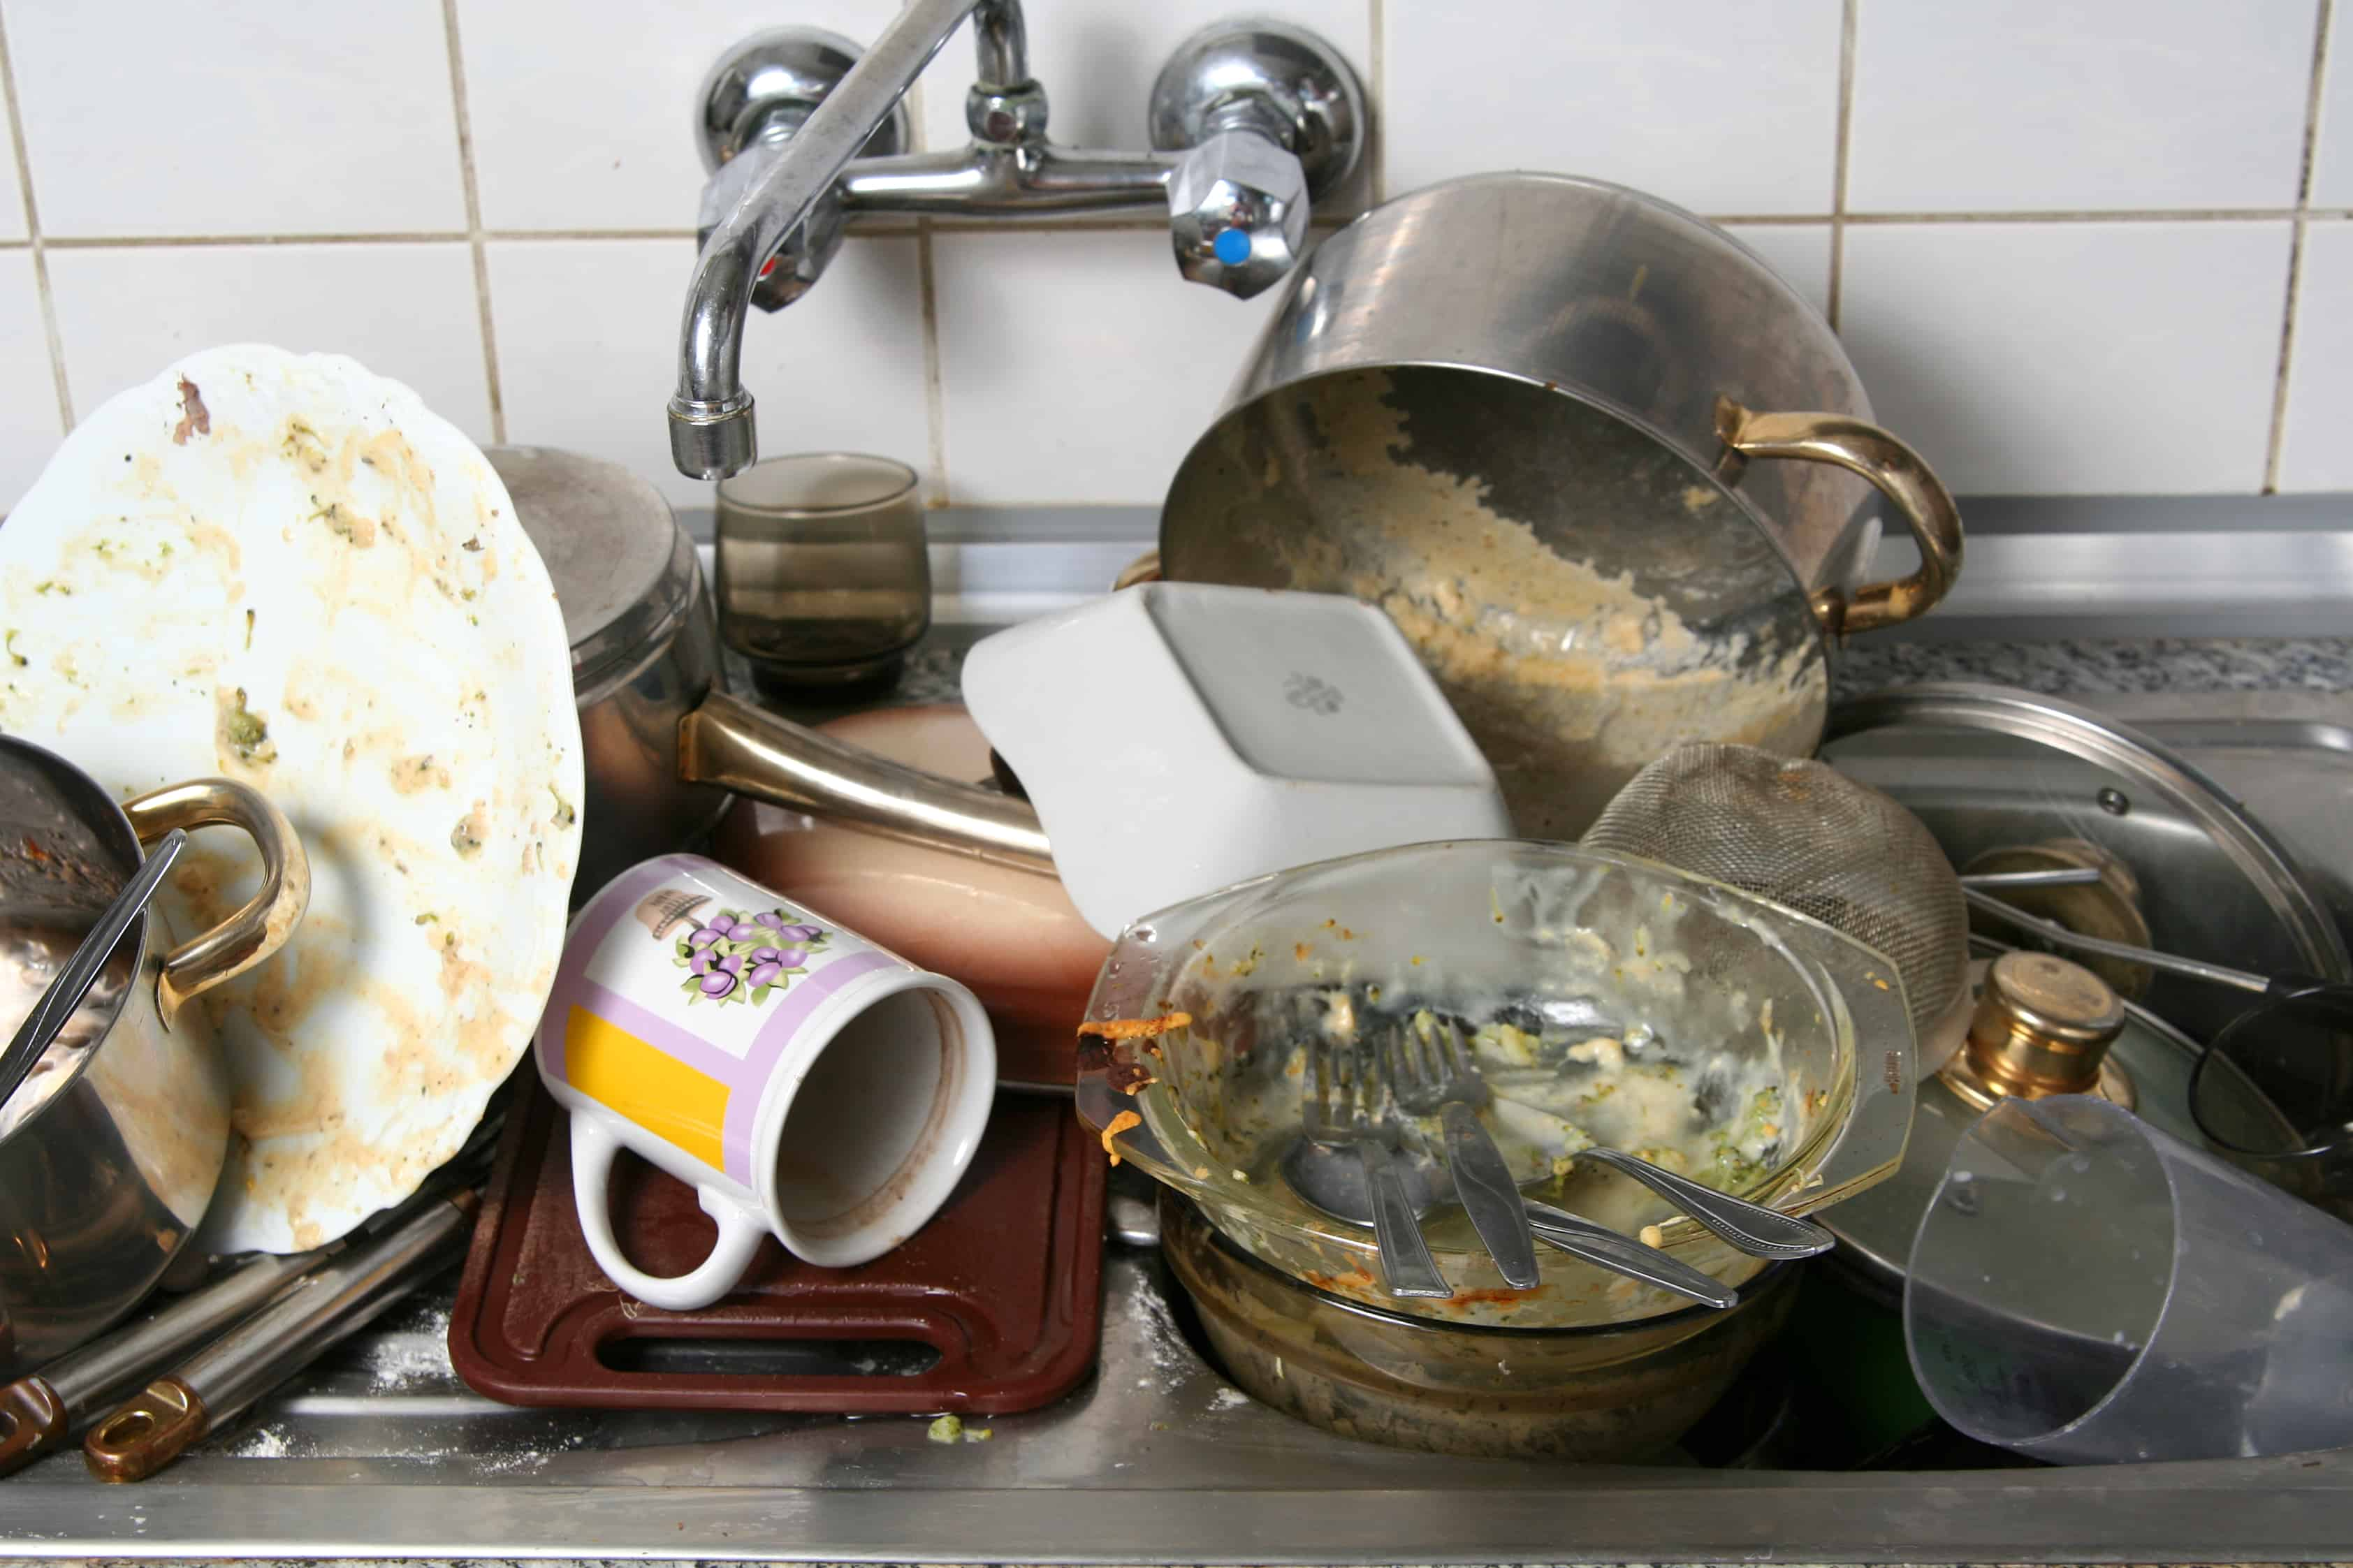 Bad Cleaning Habits That Keep Your House Messy The